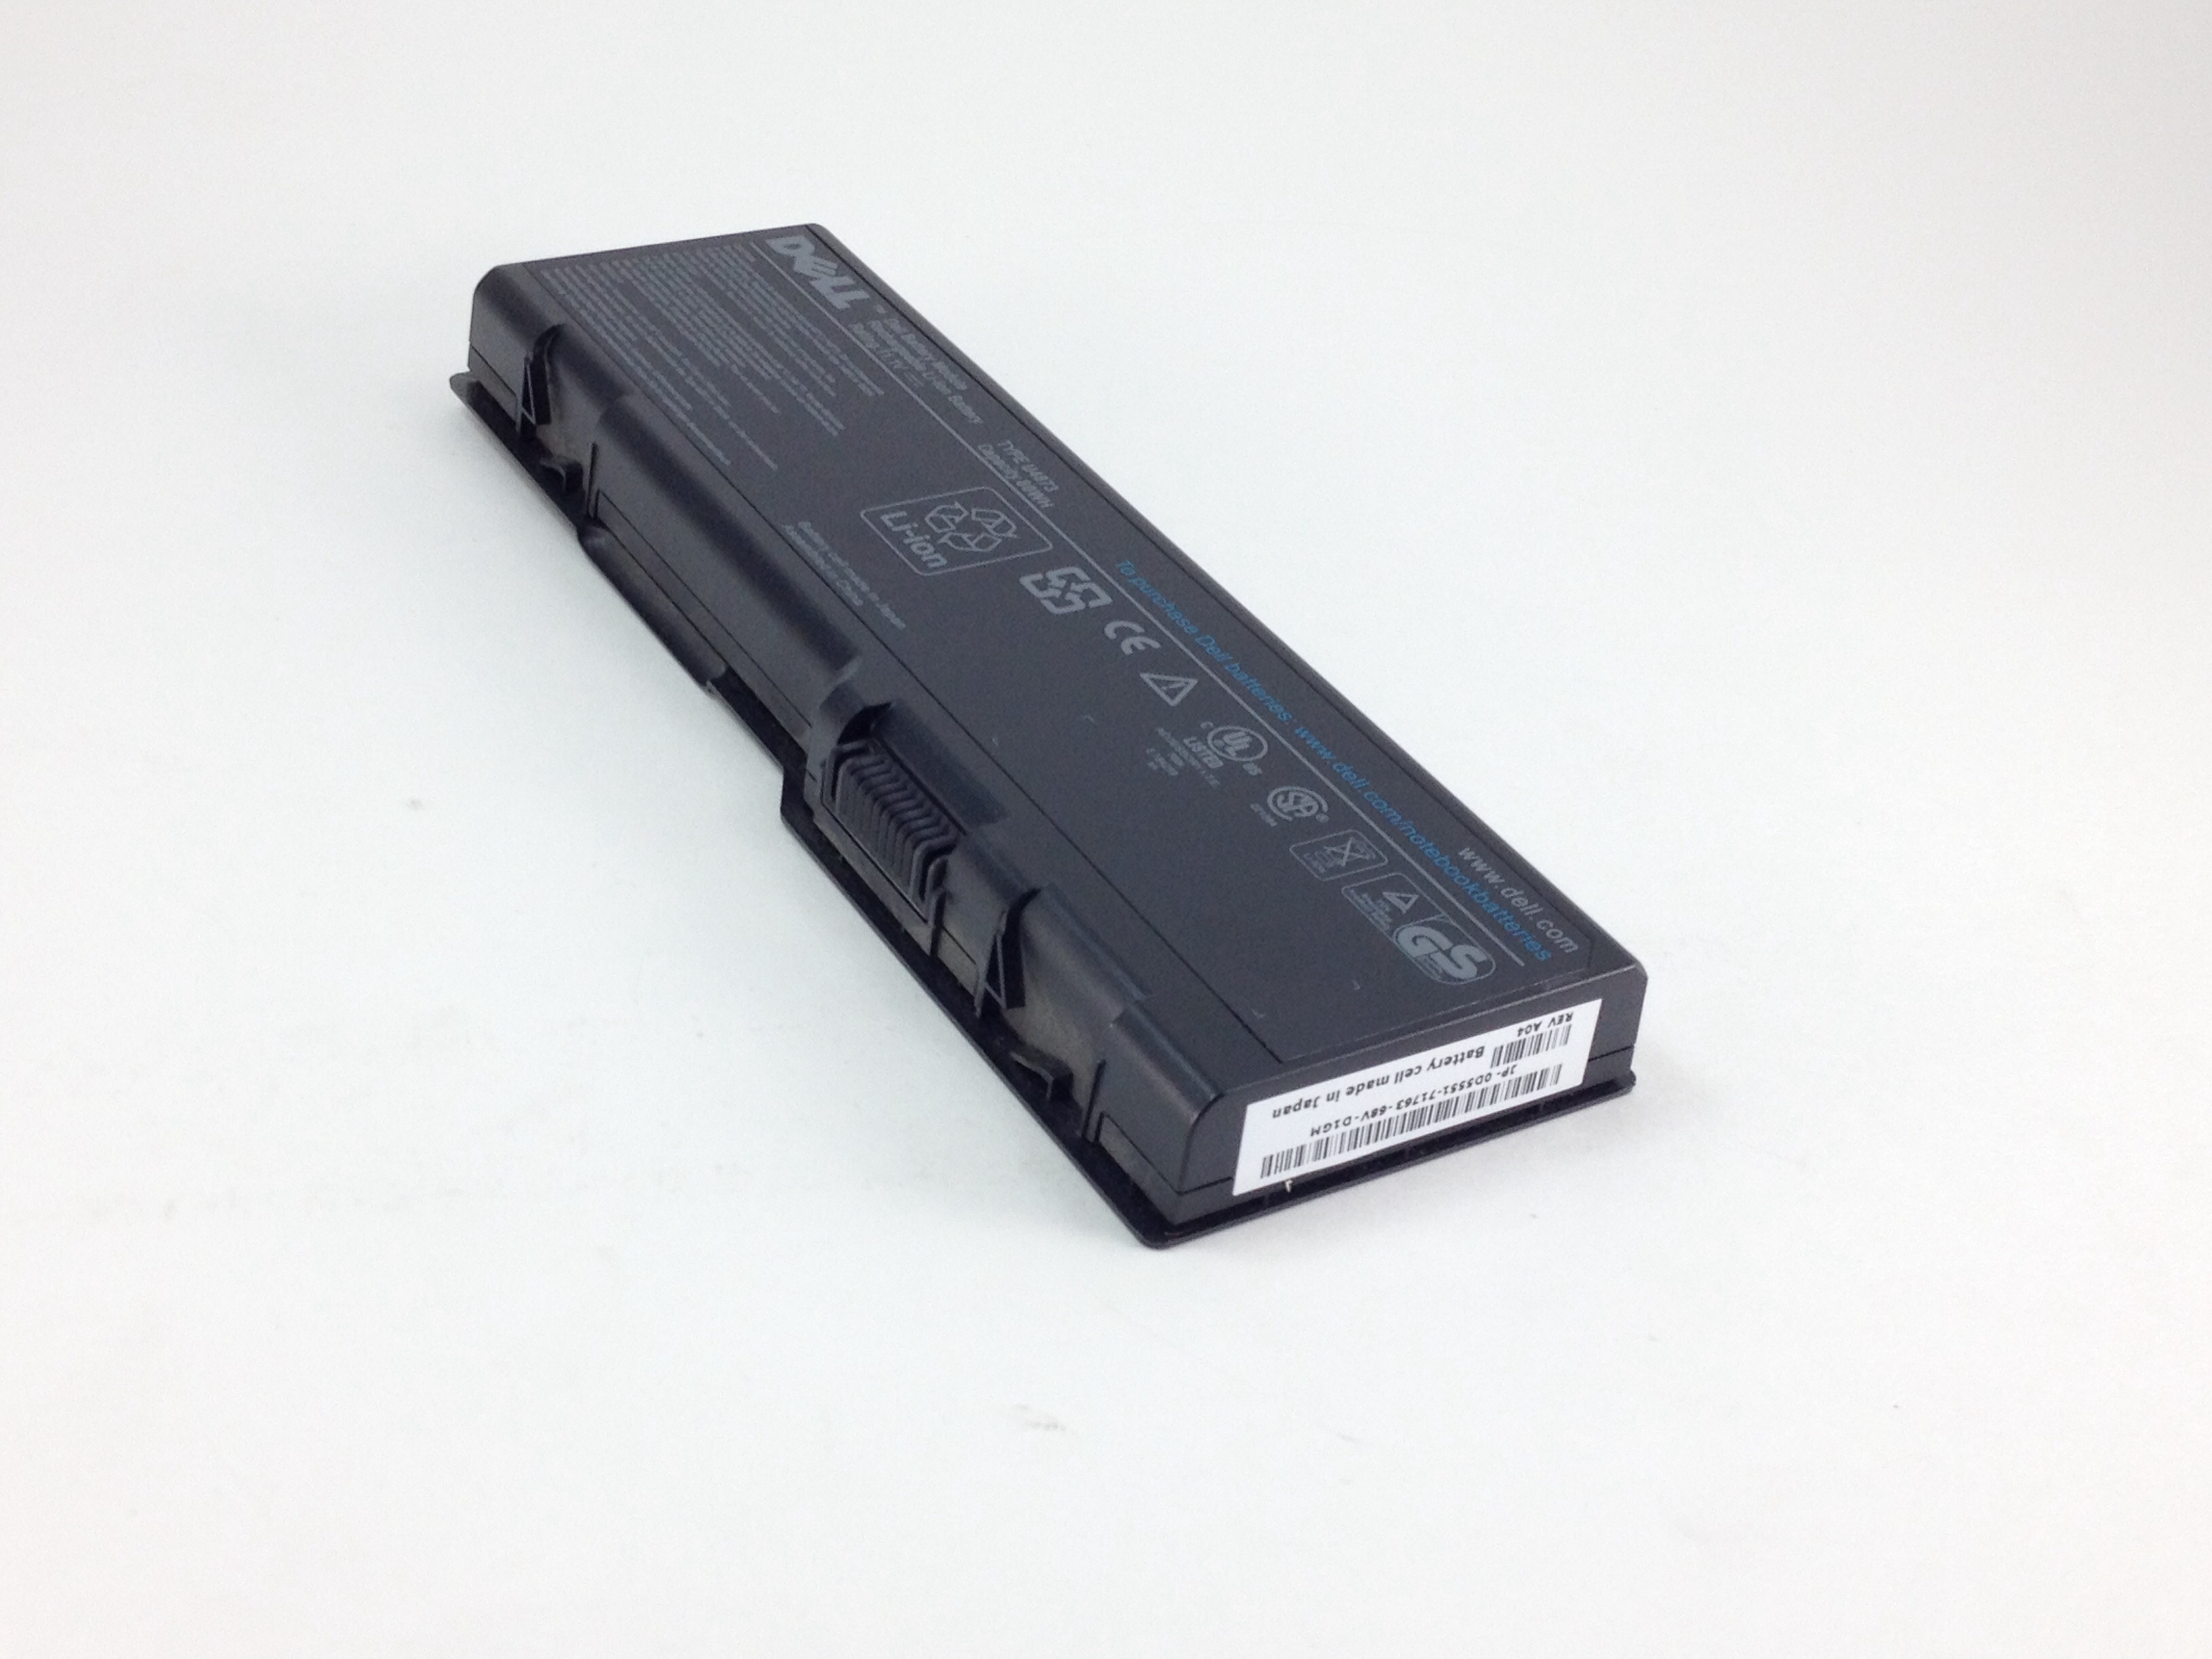 Dell Inspiron 6000 9200 9 Cell Laptop Battery (D5551)